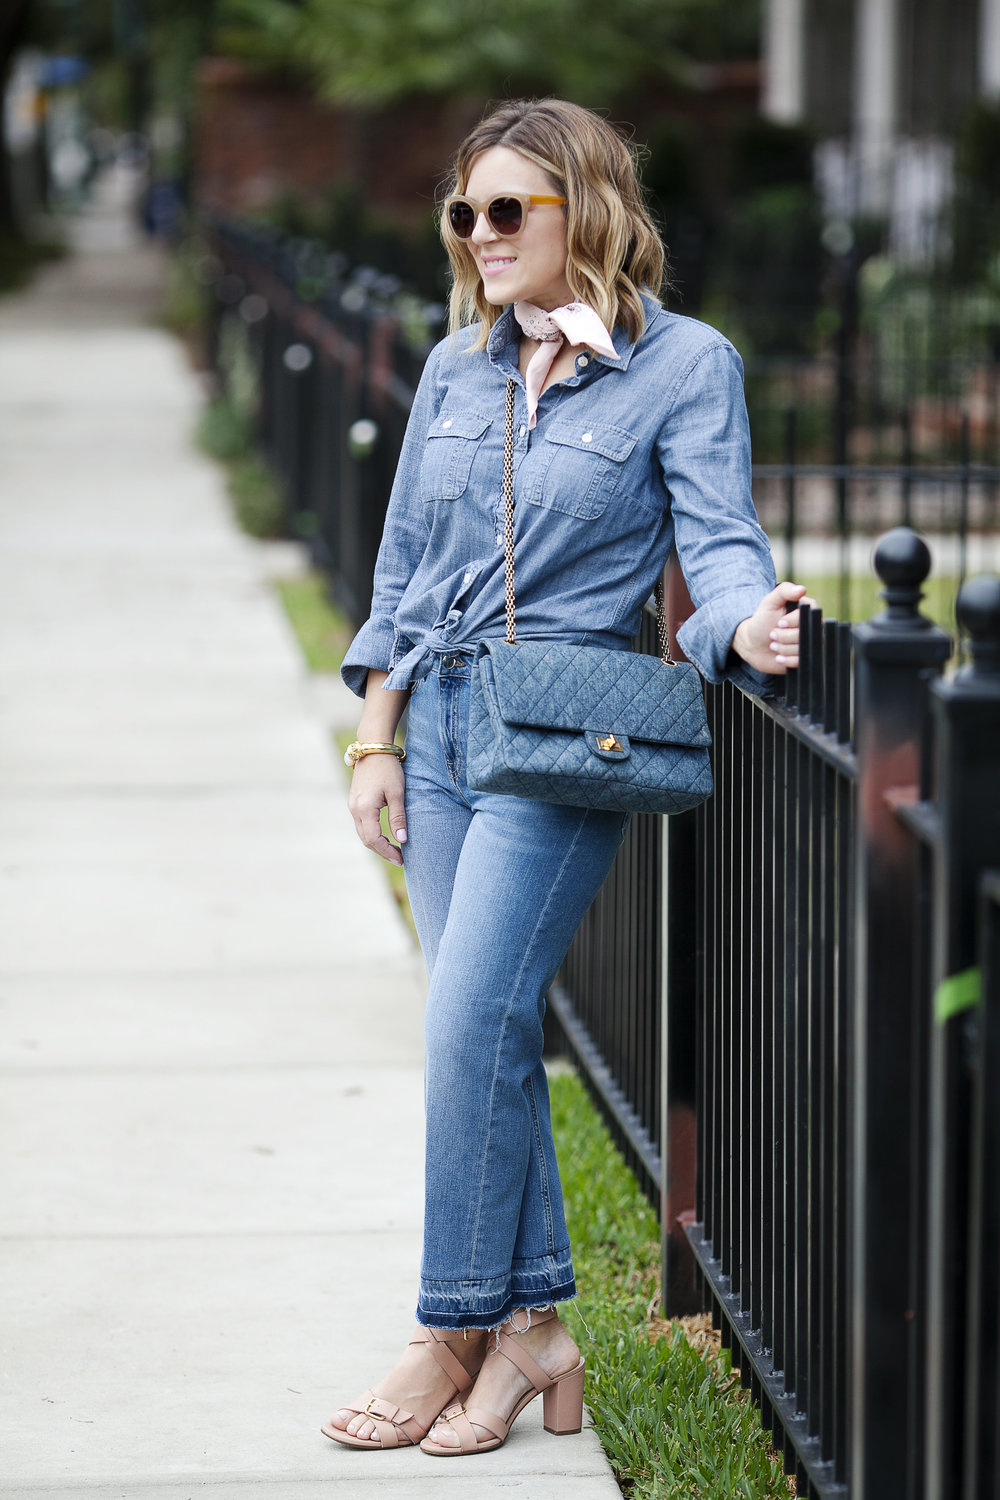 All denim look- Top Shop jeans and denim Chanel purse 3.jpg